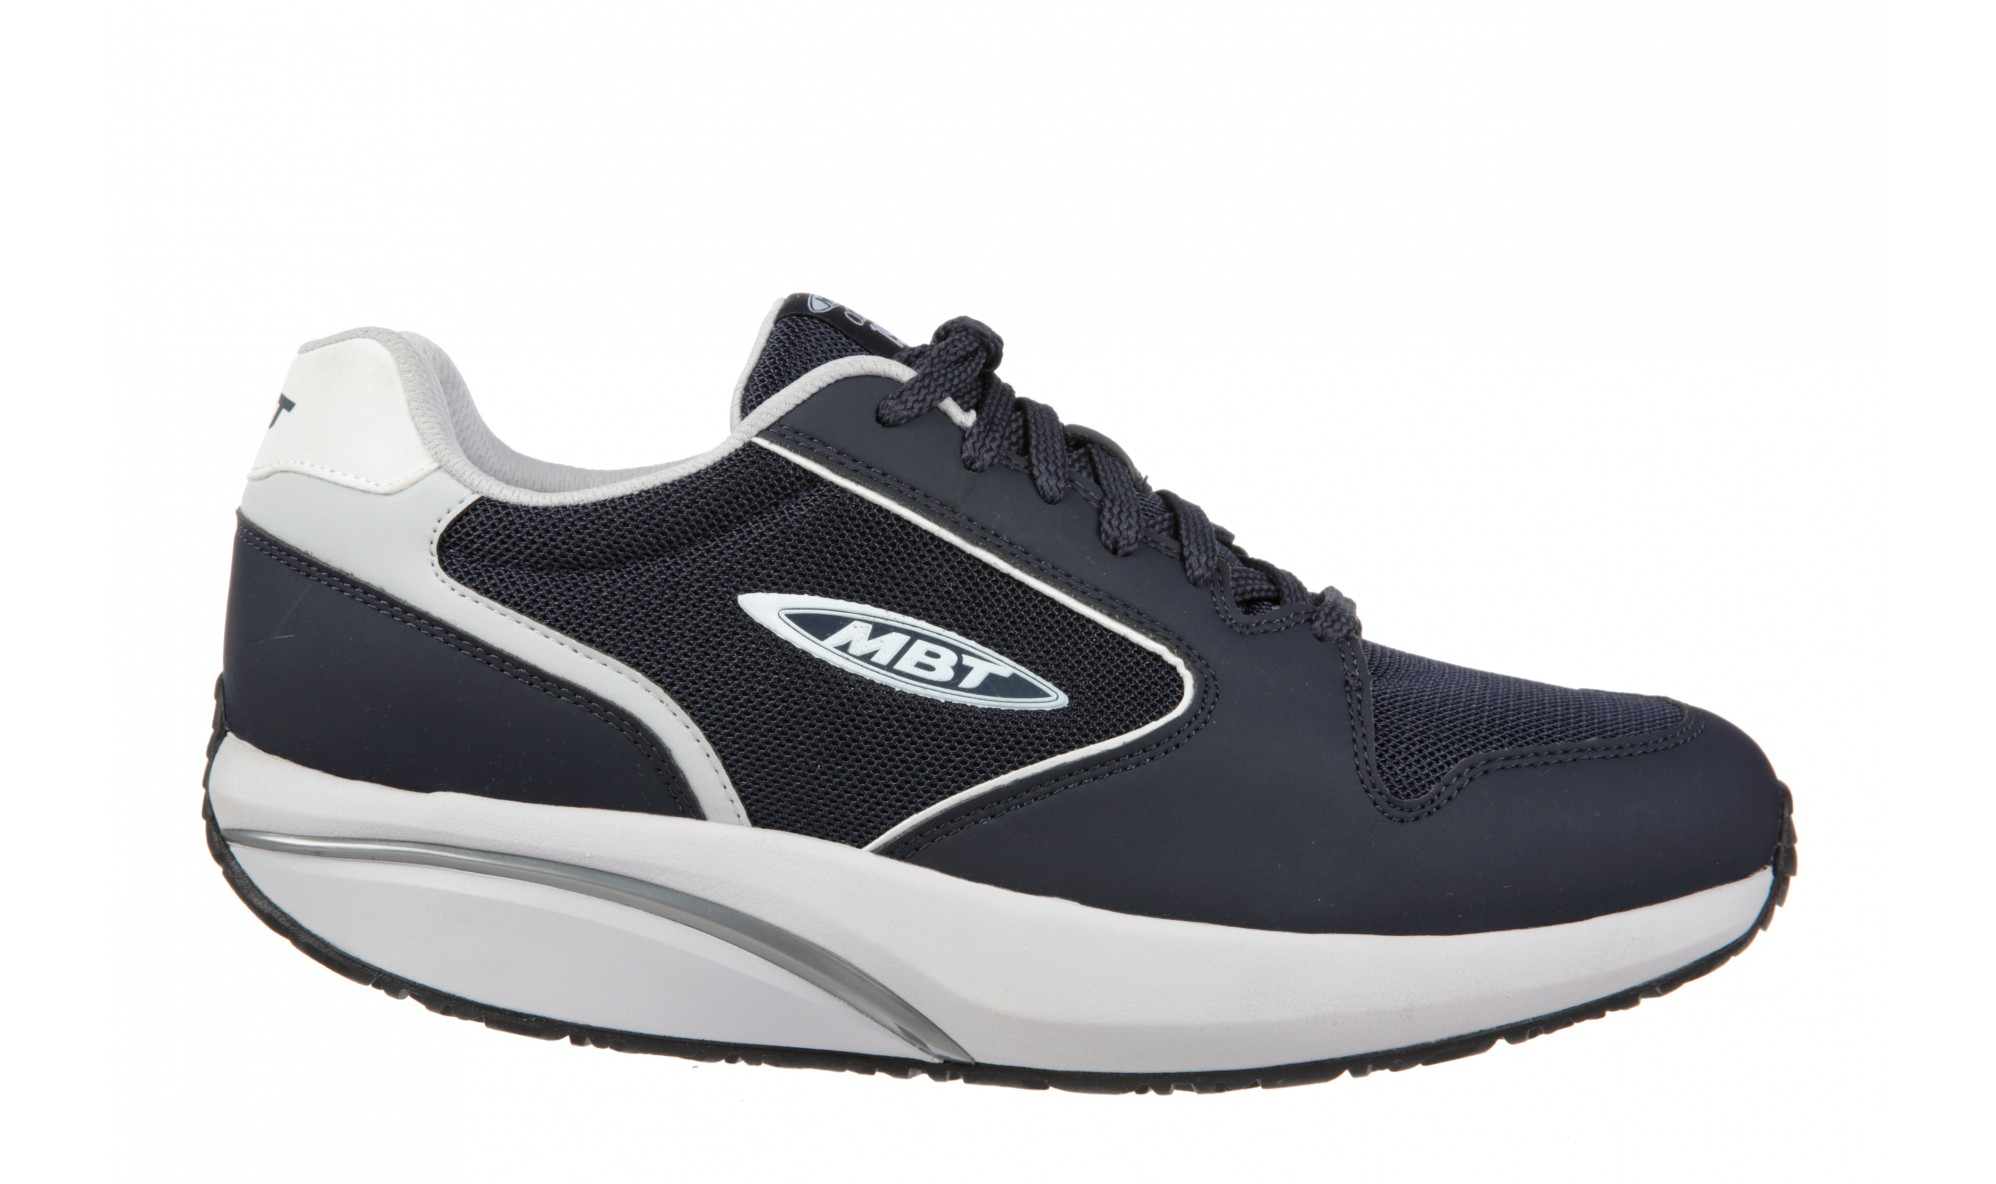 MBT 1997 Men's Dark Navy